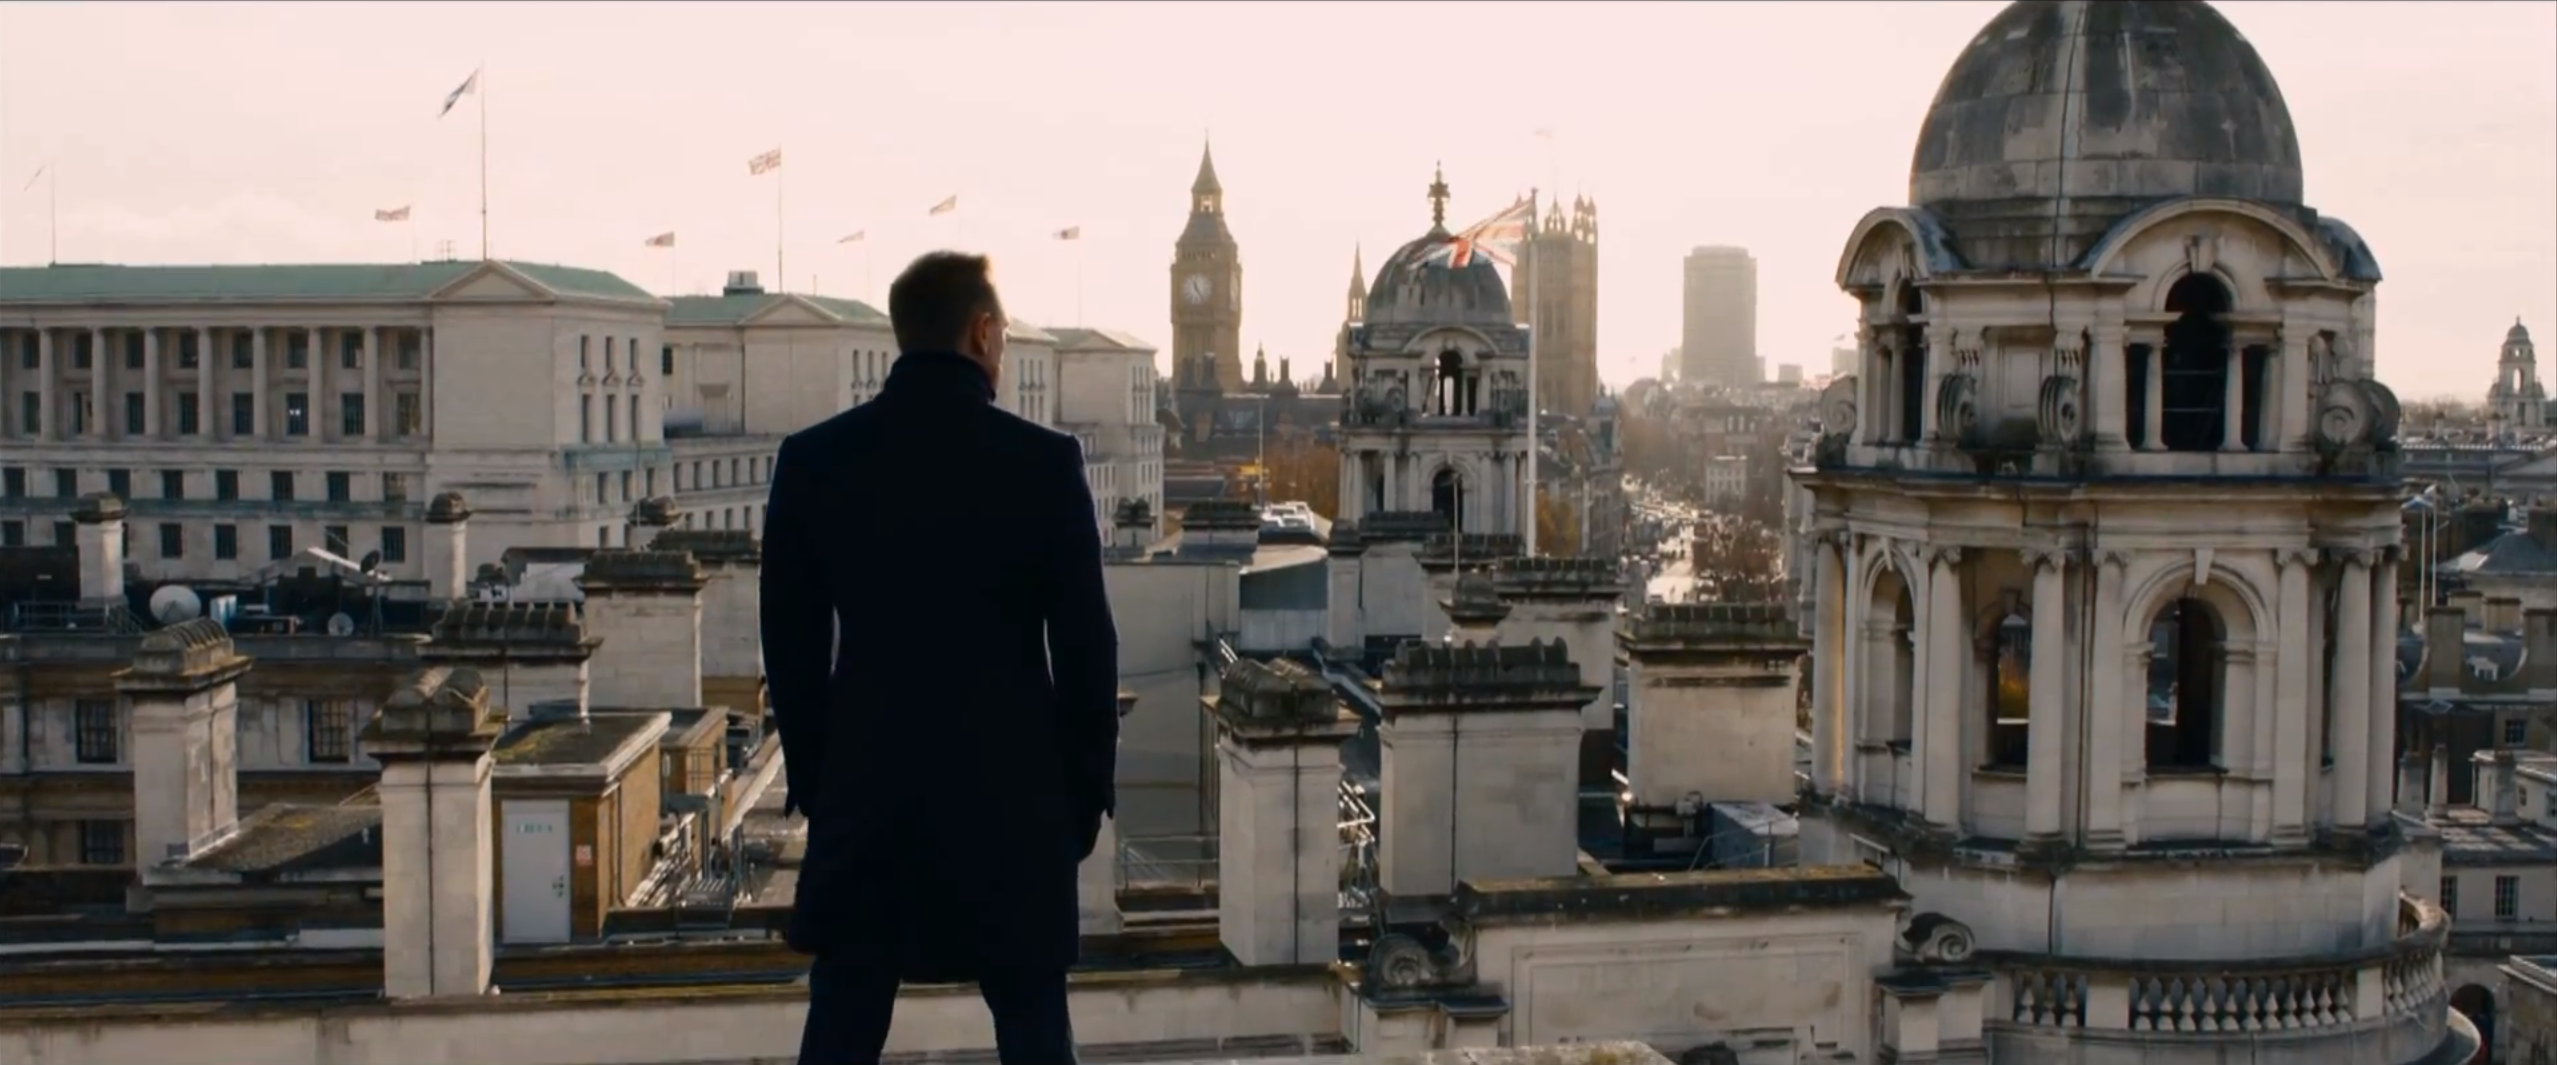 7 James Bond Filming Locations In London